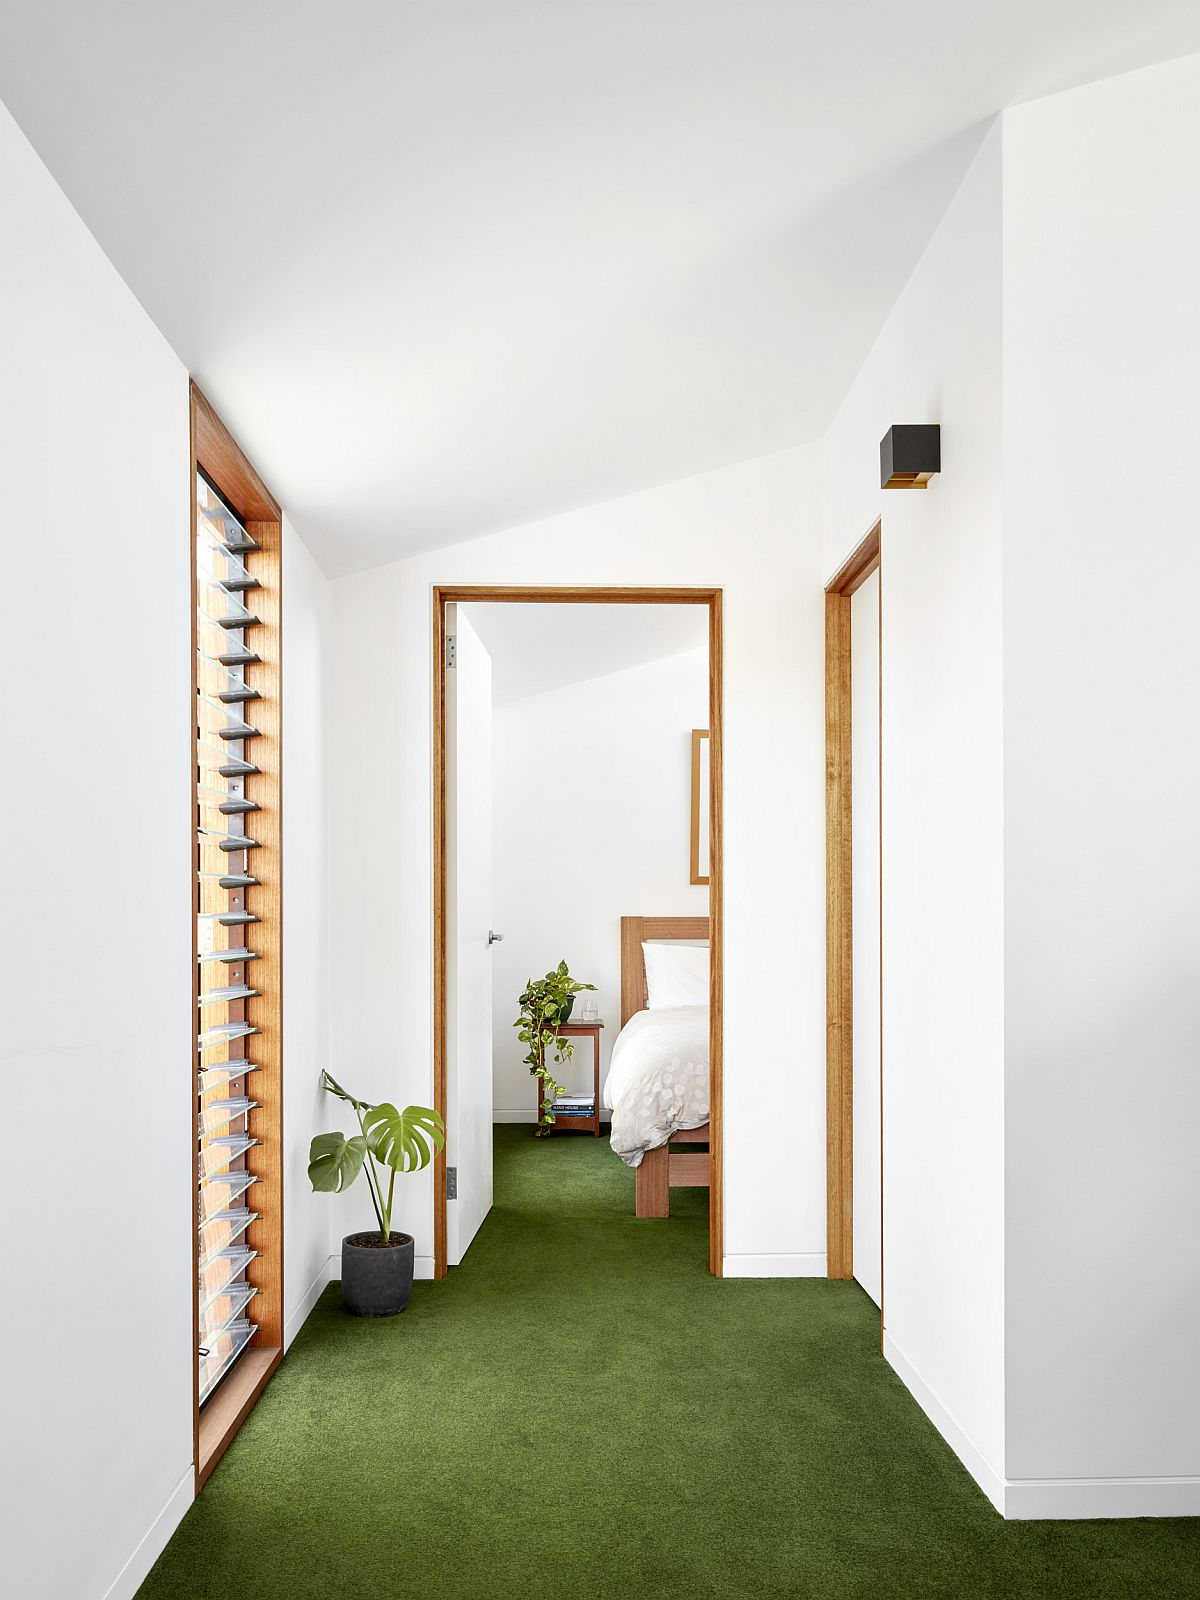 White and wood along with the green of the flooring creates a refreshing living environment